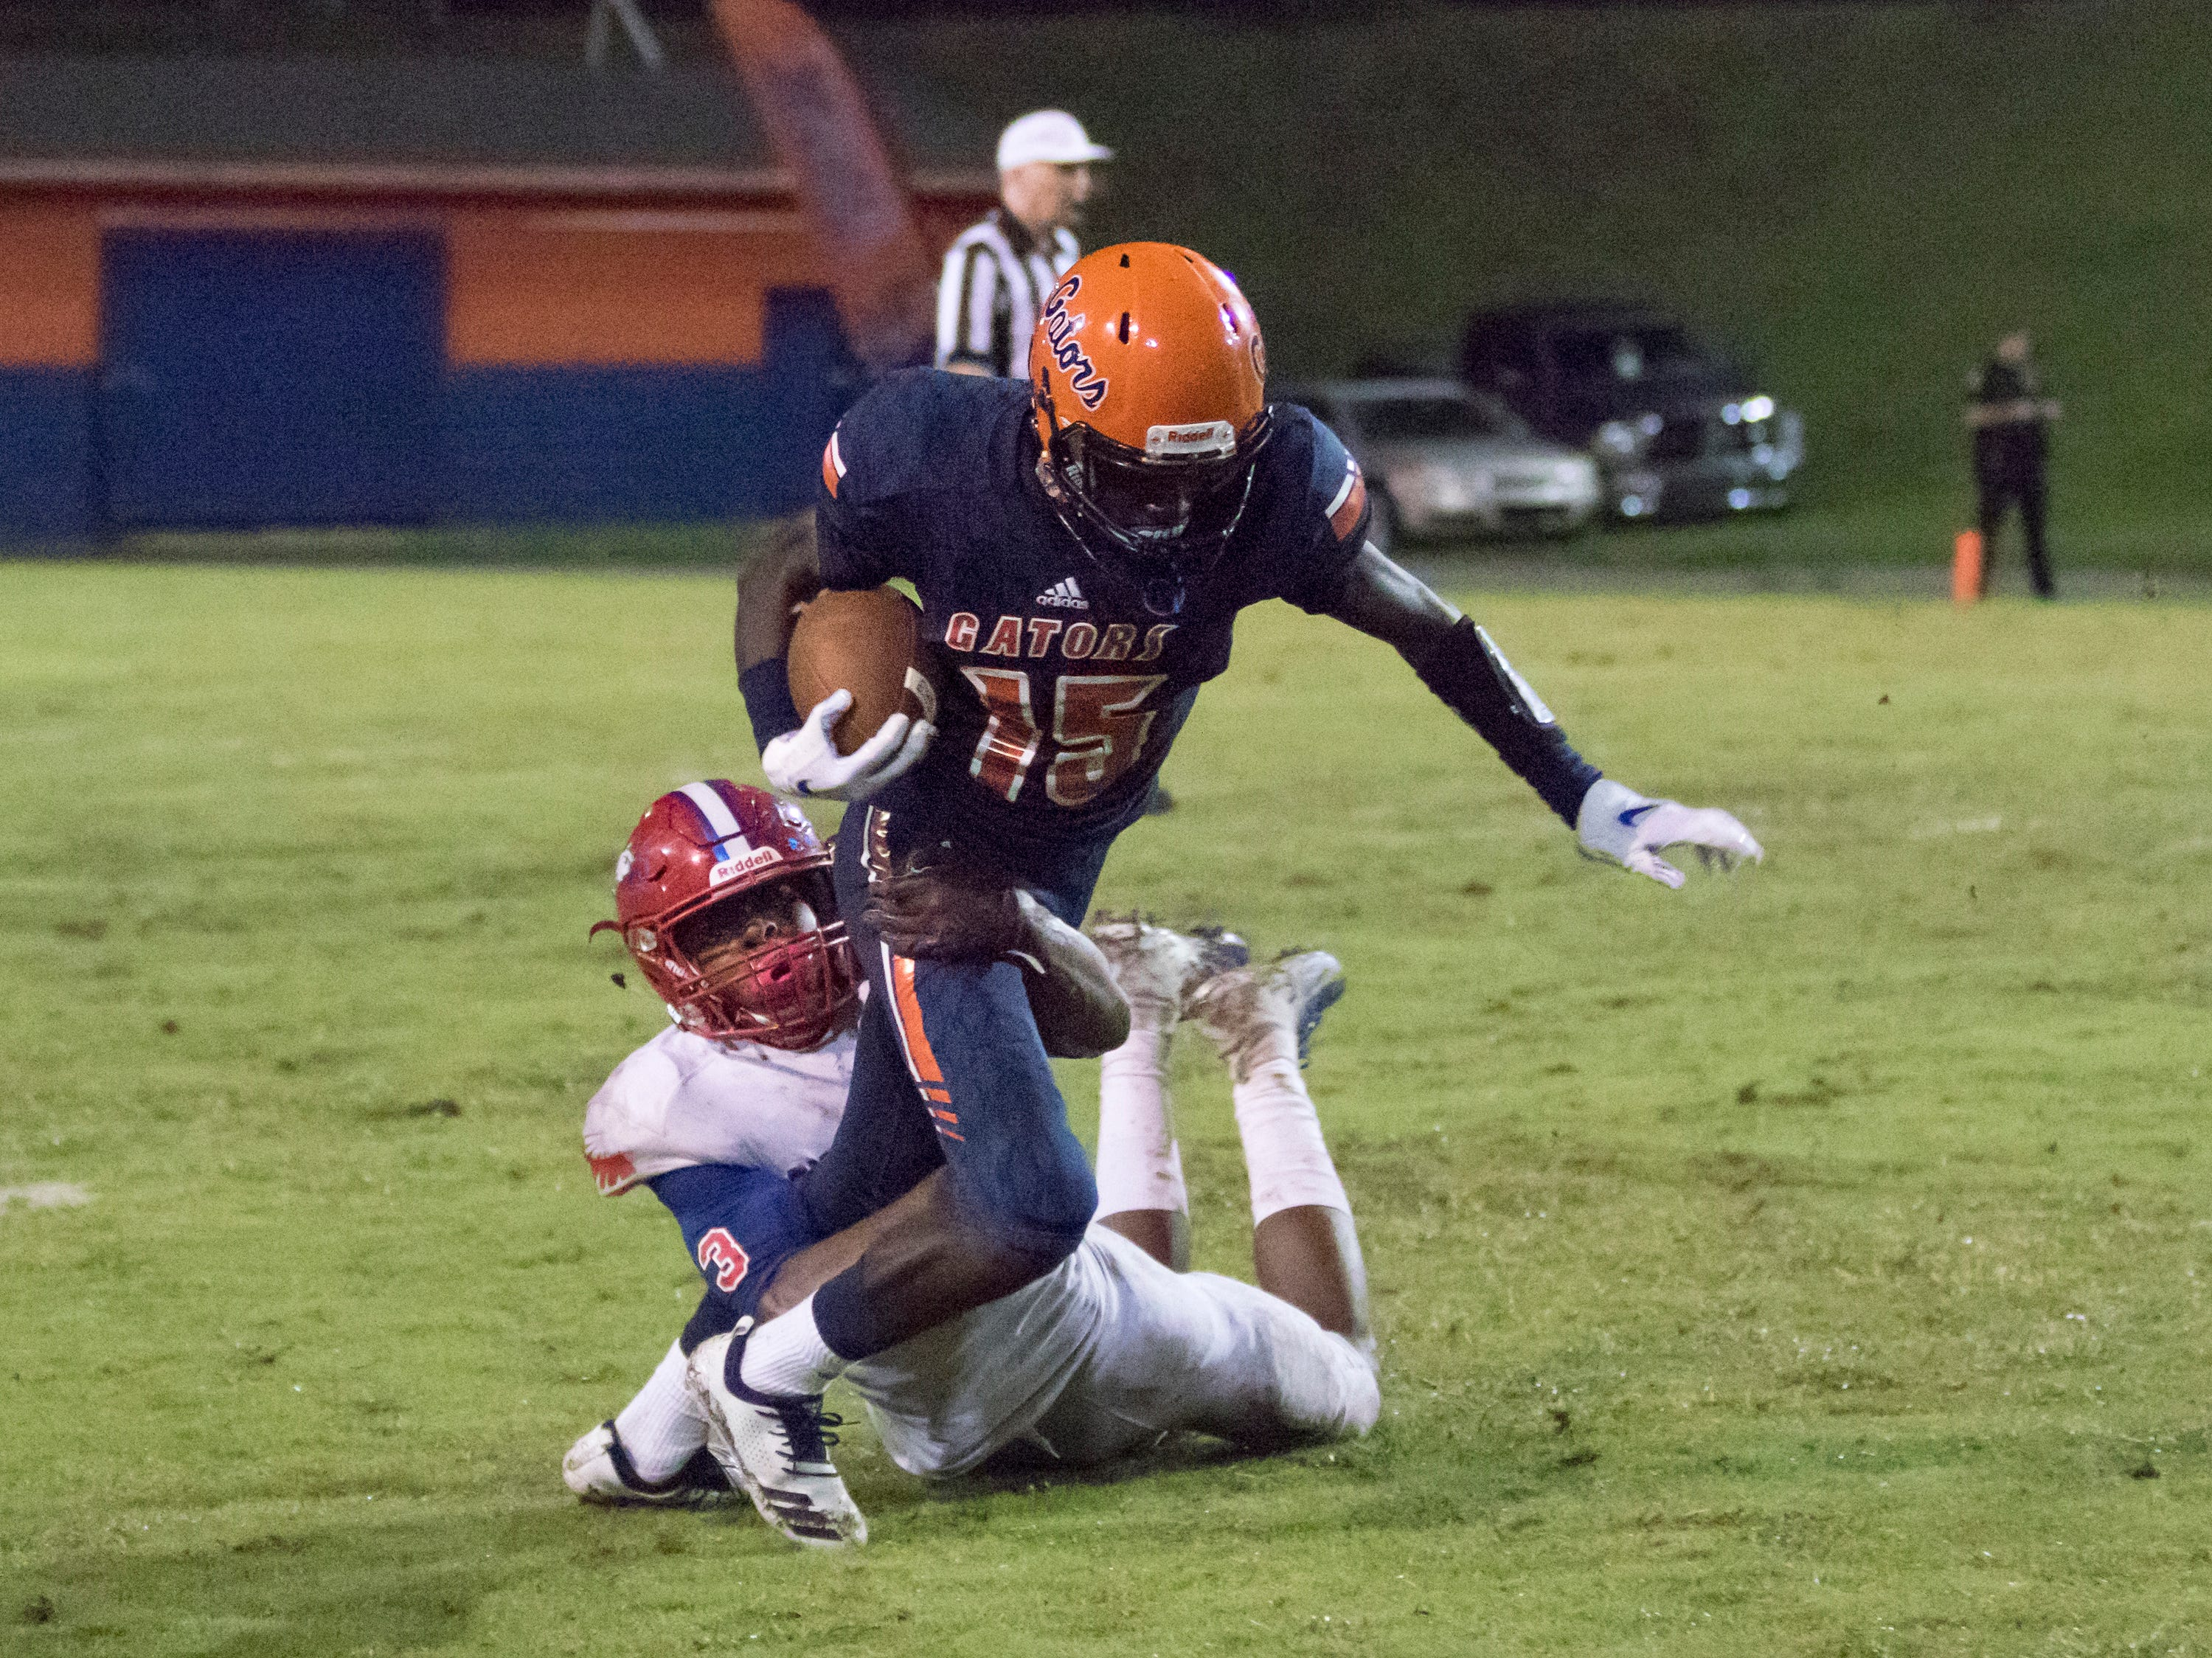 Martin Emerson (1) takes down Zakari Loveless (15) during the Pine Forest vs Escambia football game at Escambia High School in Pensacola on Friday, September 28, 2018.